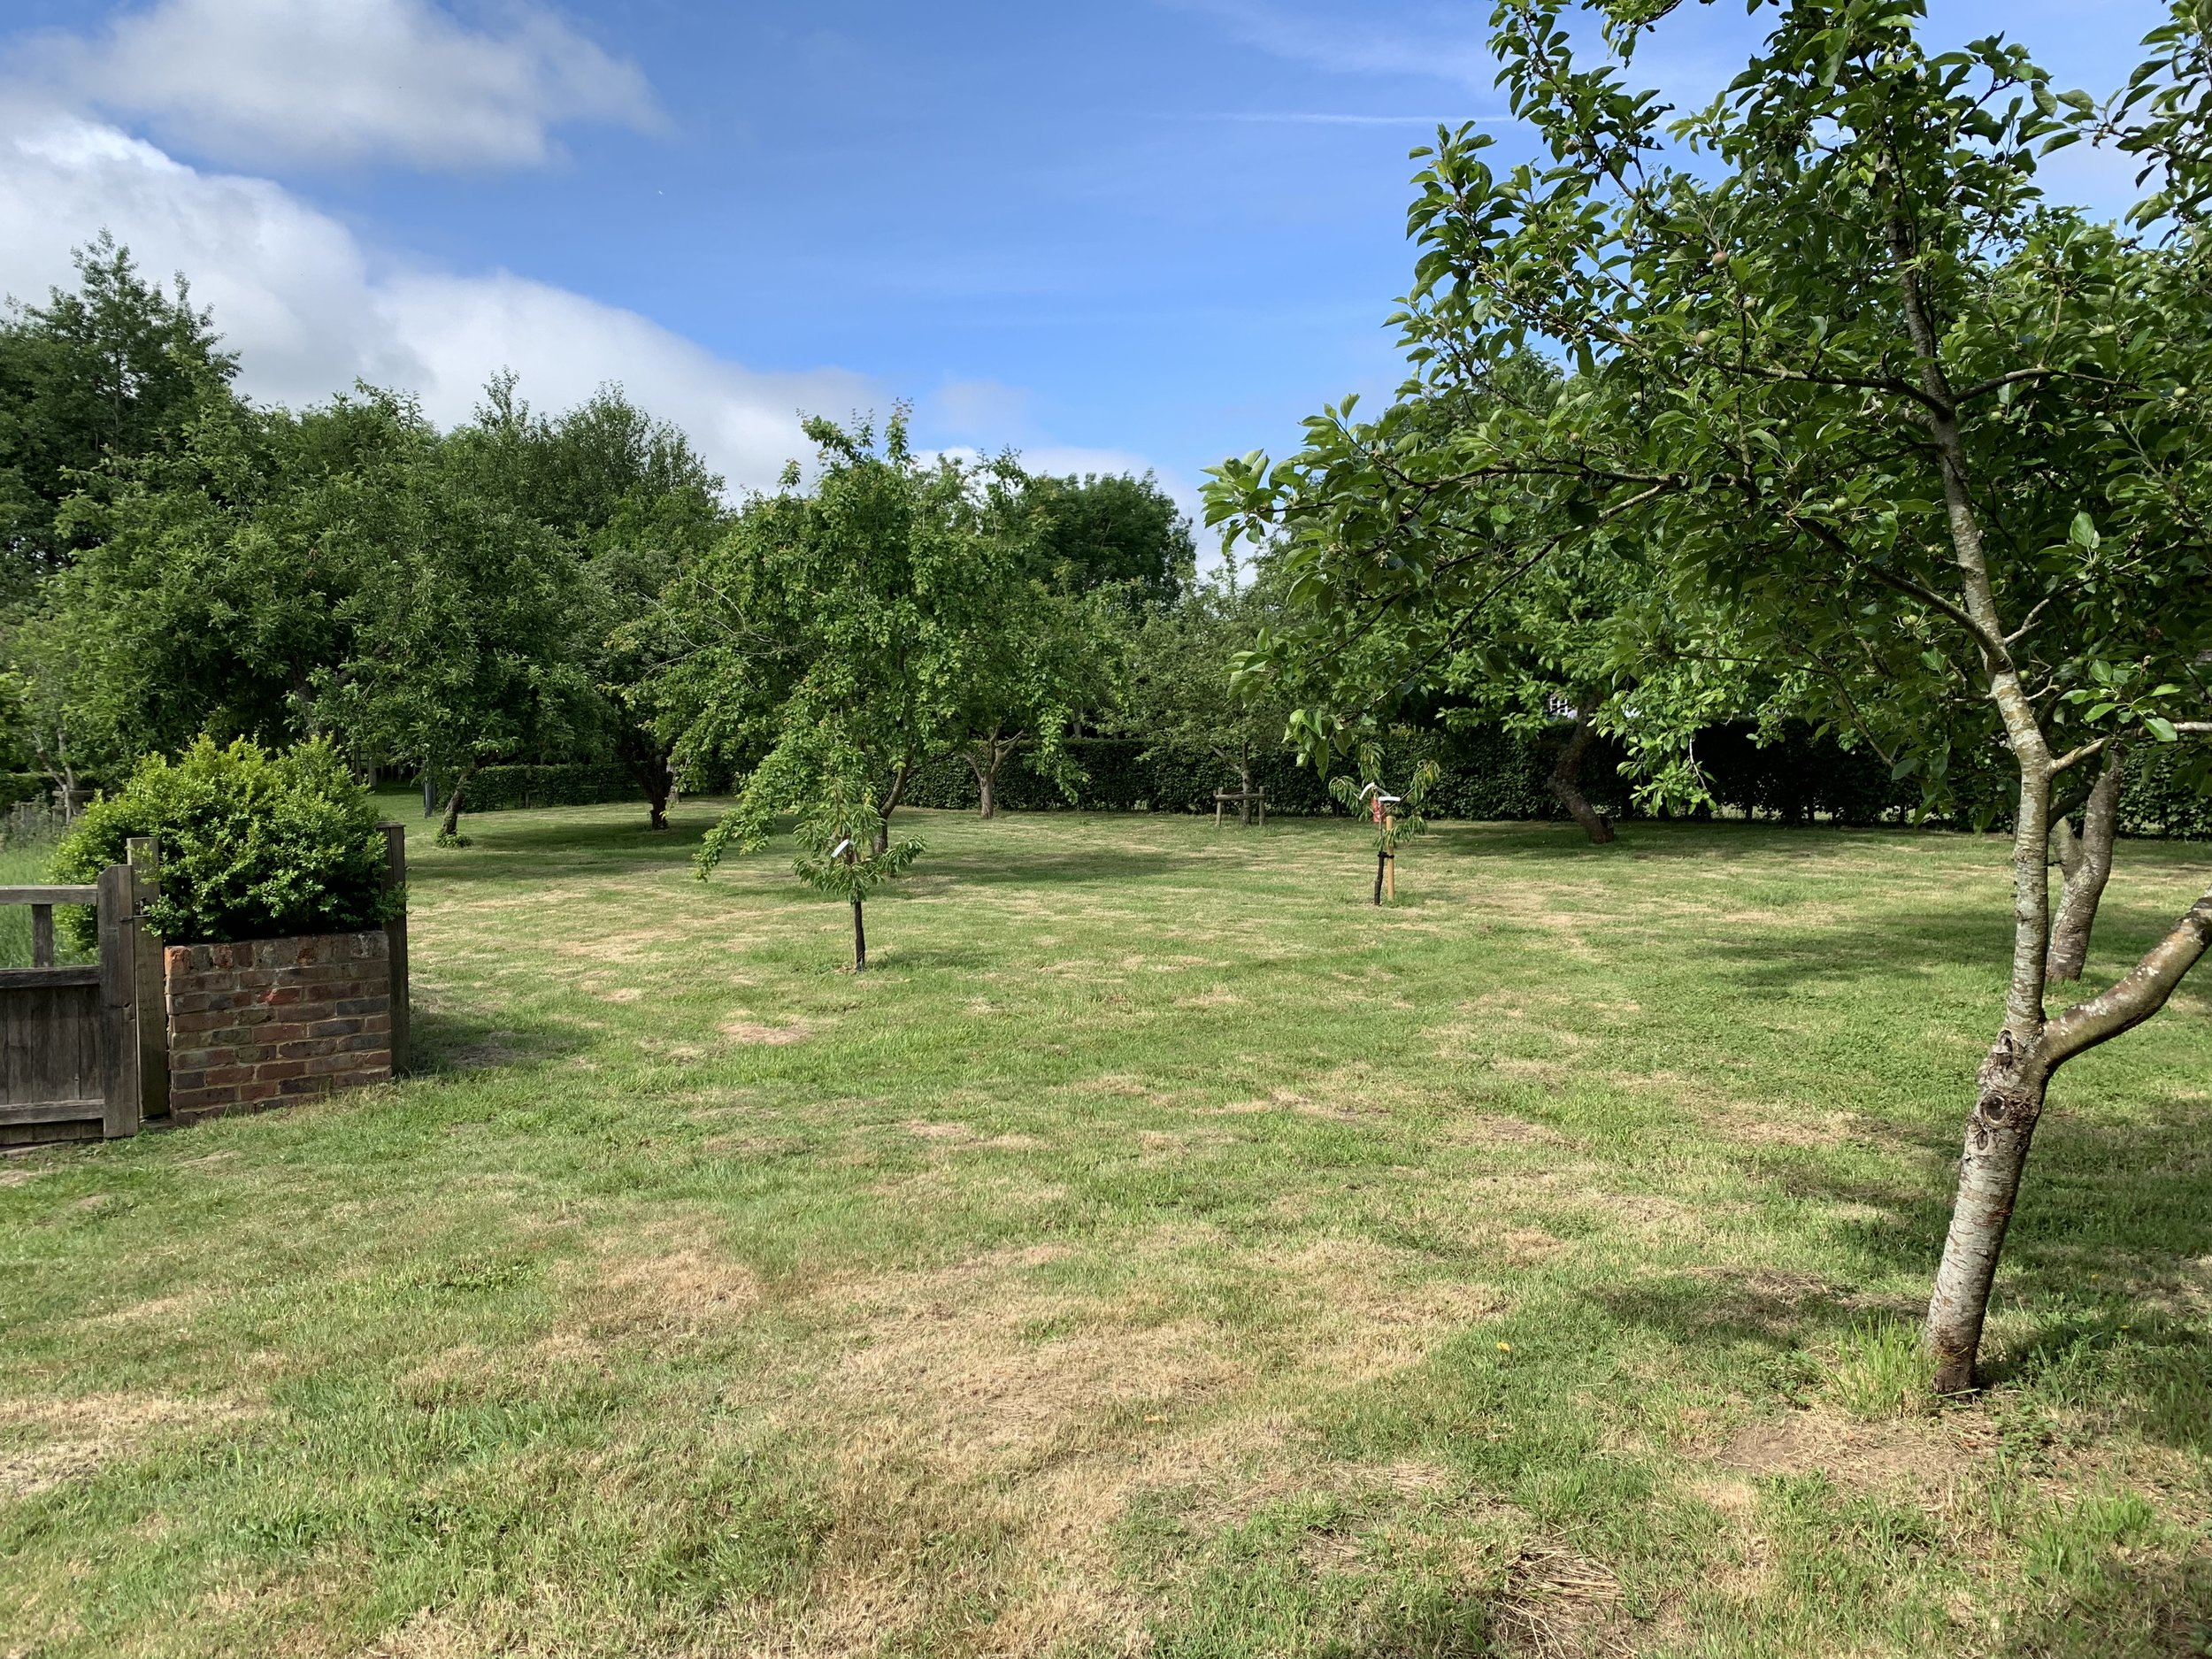 This is the orchard at the end of May, plums and Apples are just starting to grow. In view are the two cherry trees we planted earlier in the year.